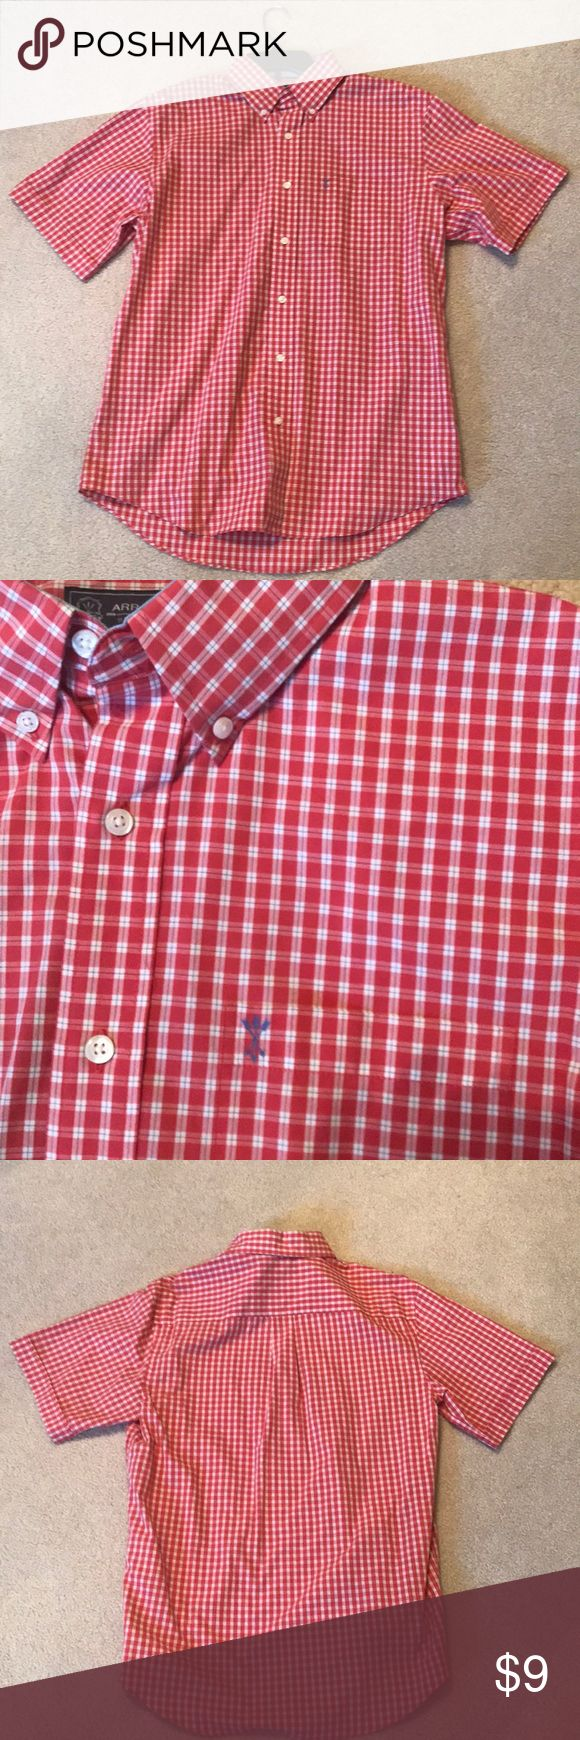 Arrow shirt Perfect condition. Washes well. Great  muted red color. Arrow Shirts Casual Button Down Shirts